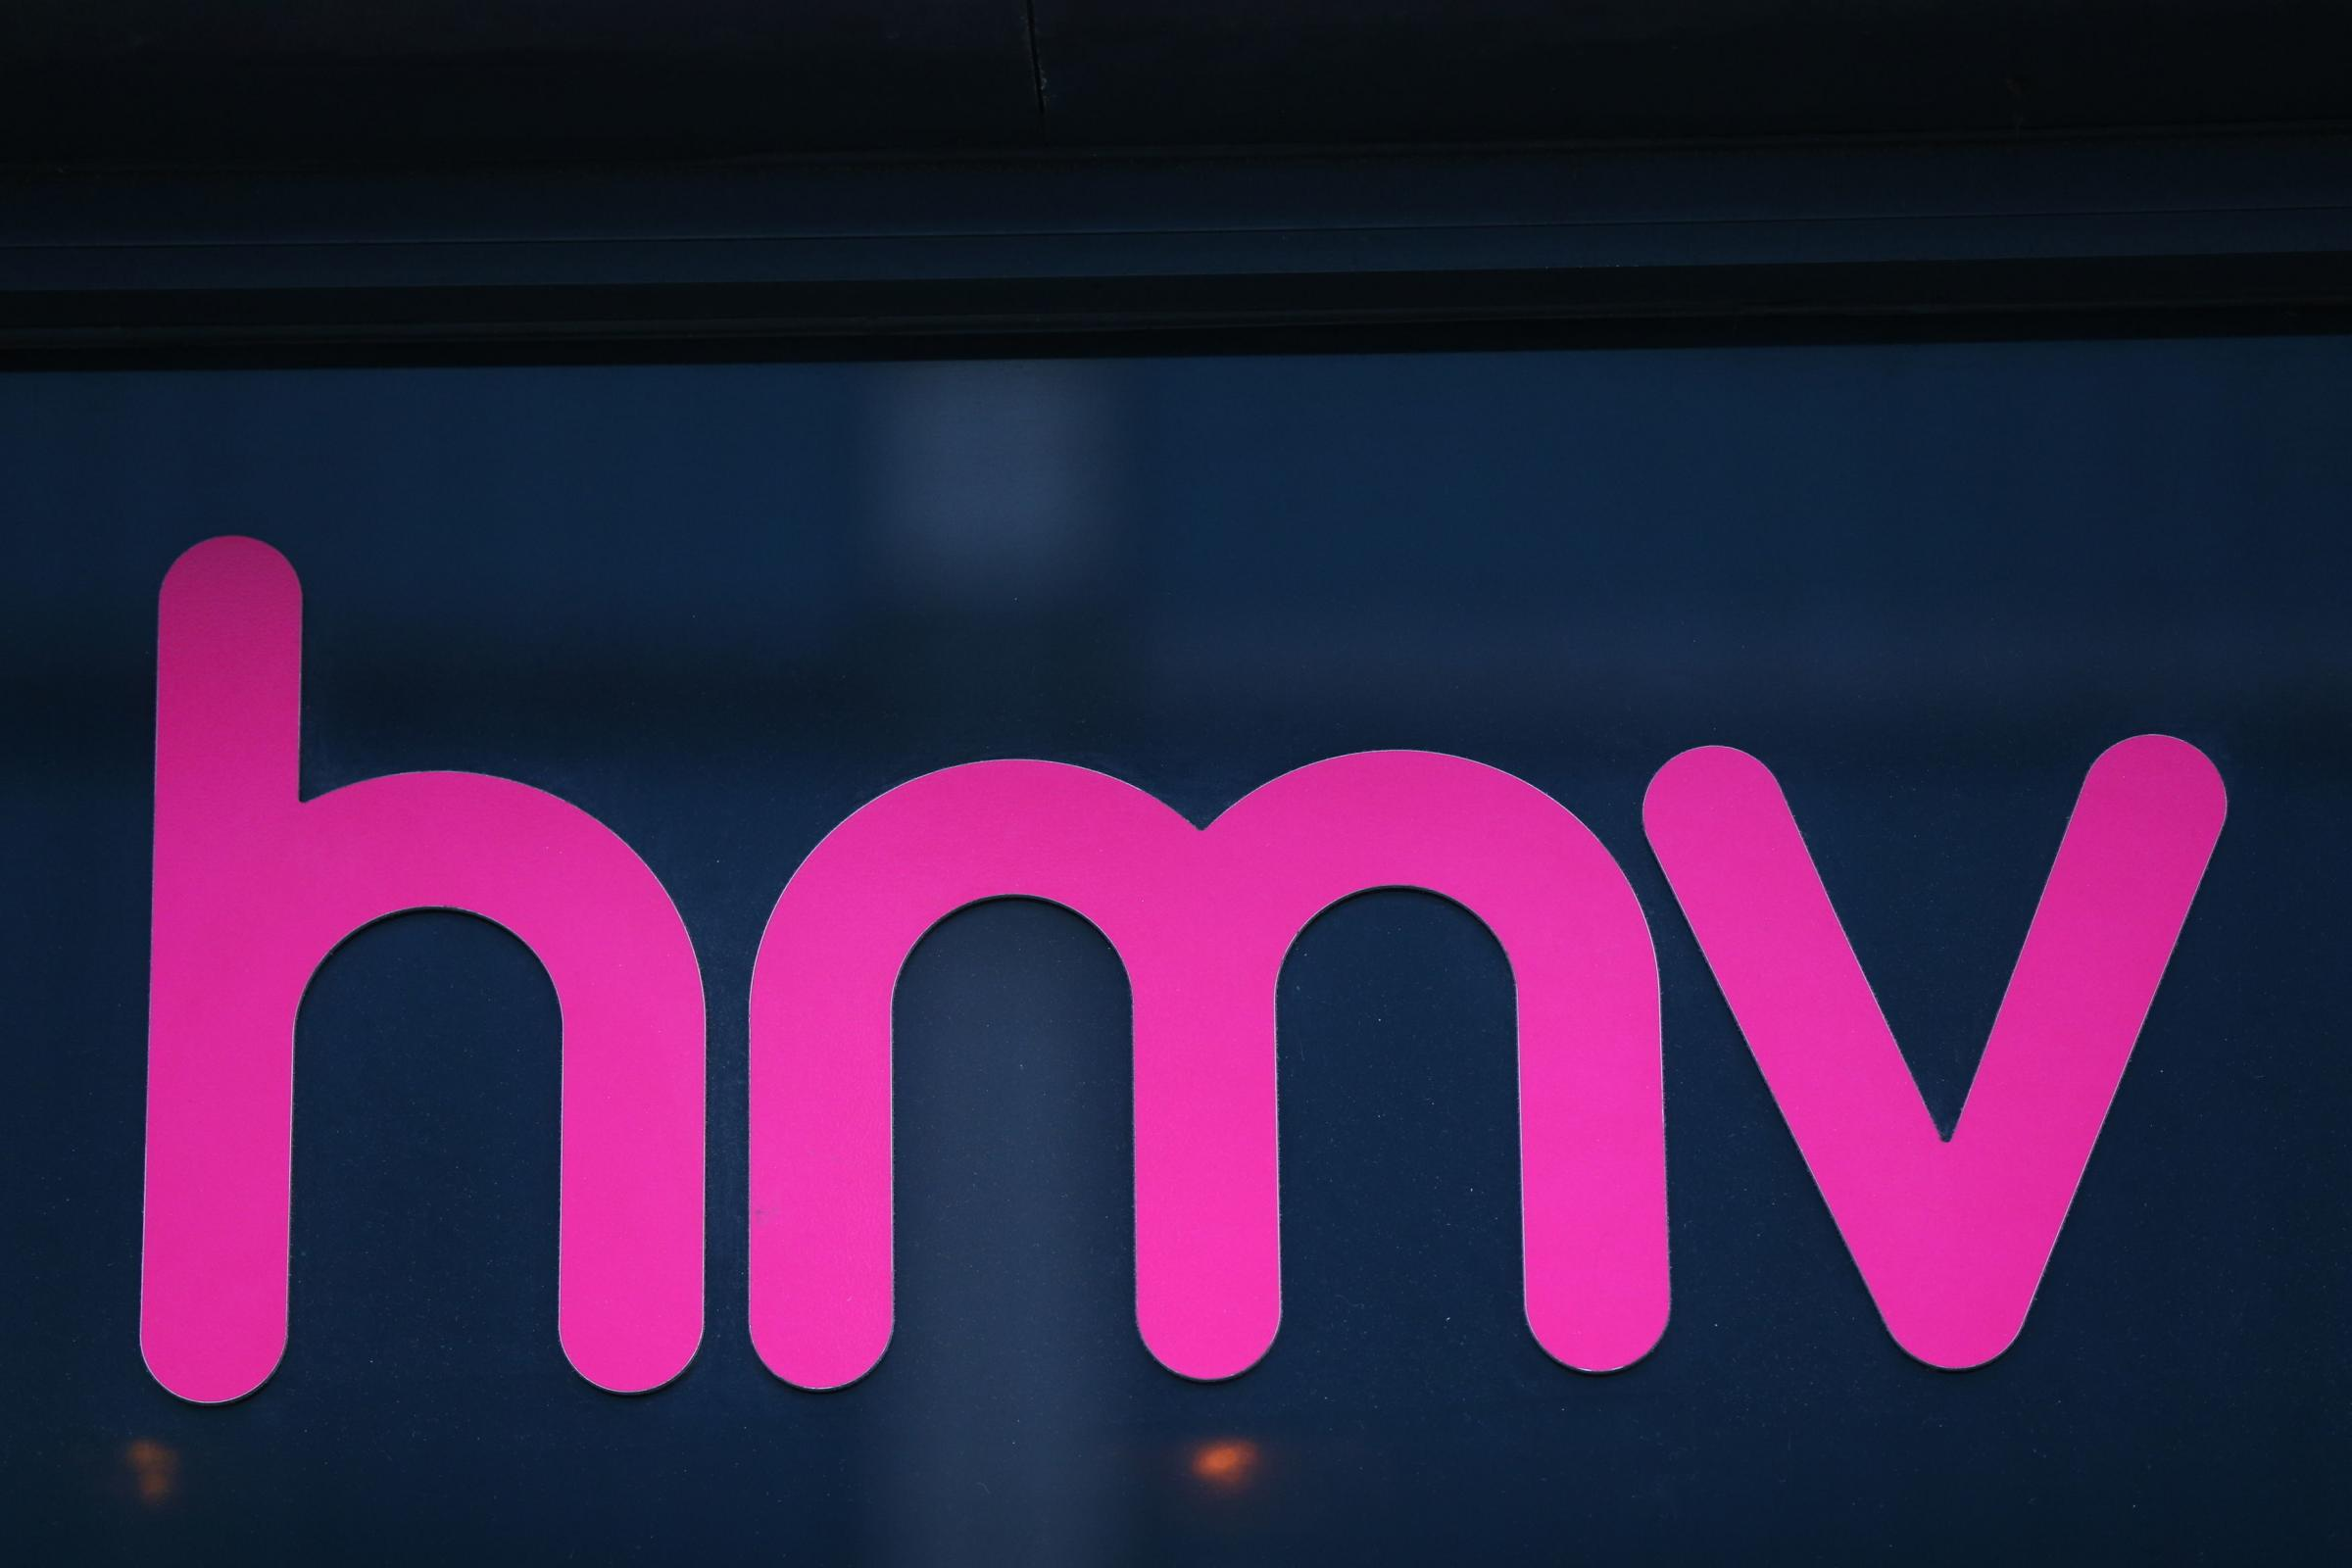 File photo dated 28/12/2018 of a sign outside a branch of HMV, which has been acquired out of administration by Canadian retailer Sunrise Records. PRESS ASSOCIATION Photo. Issue date: Tuesday February 5, 2019. See PA story CITY HMV. Photo credit should r